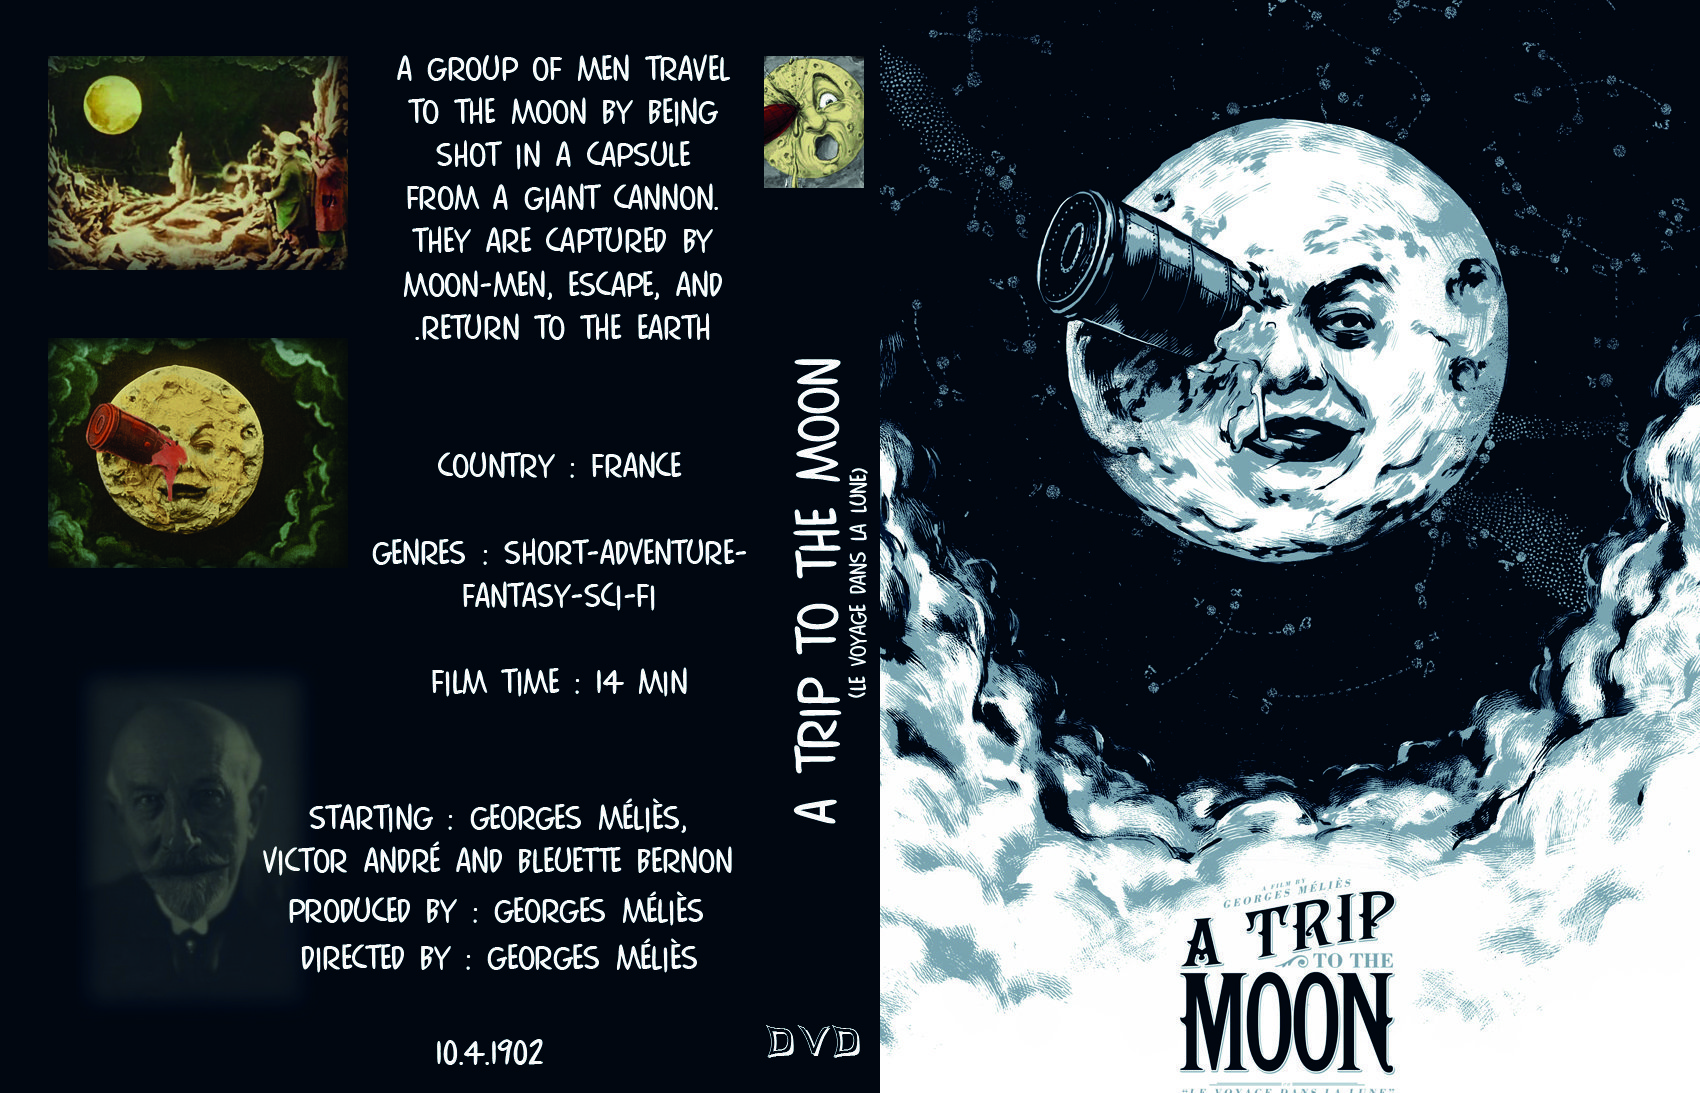 review of a trip to the moon film studies essay Film studies video the class will view some landmark short films such as a trip to the moon, the great train robbery, etc essay on a film noir chosen.